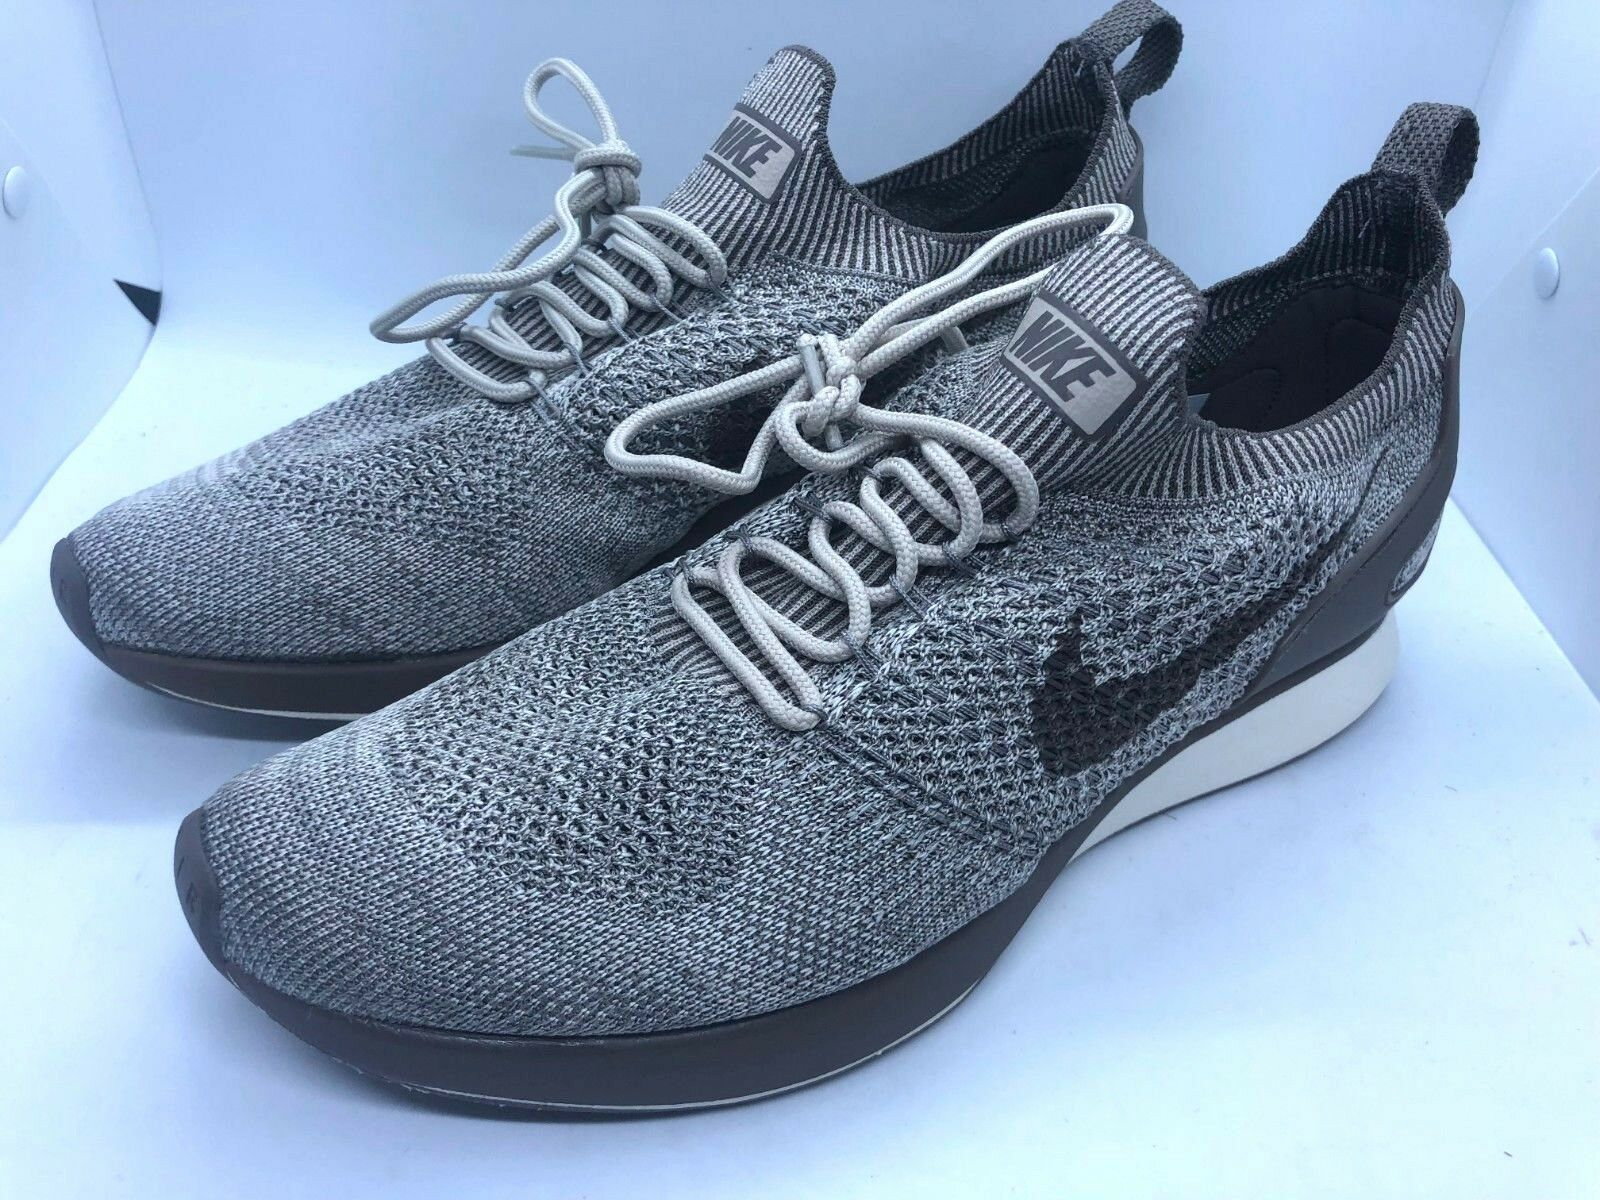 Homme femme: nouvelnike flyknit 9,5 air zoom mariah flyknit nouvelnike racer pointure homme 9,5 nike 0dbfaa